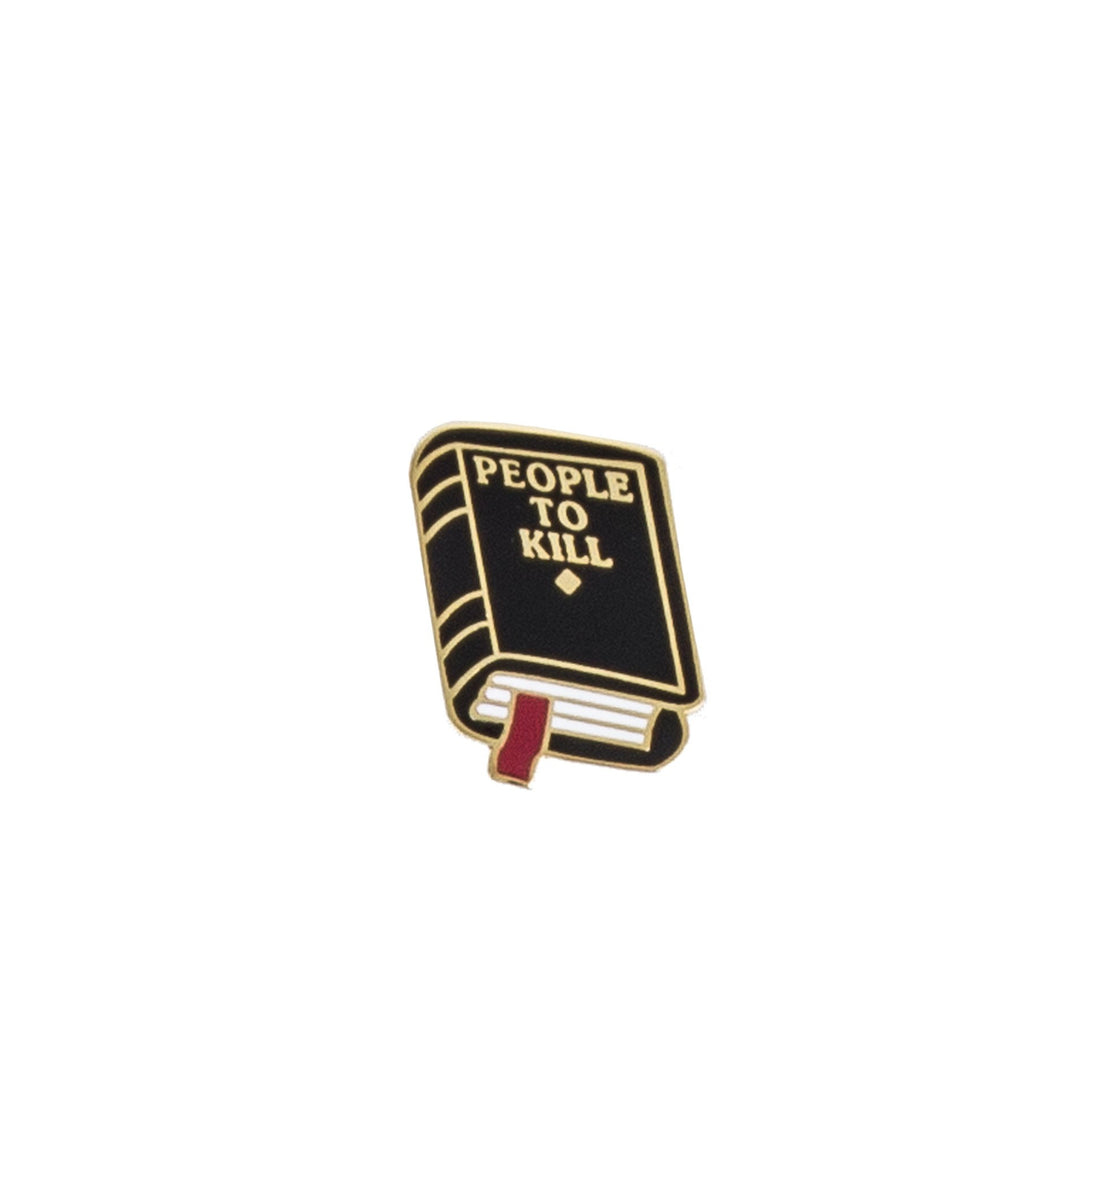 Explorer's Press - People to Kill Pin - Accessories: Pins - Iron and Resin